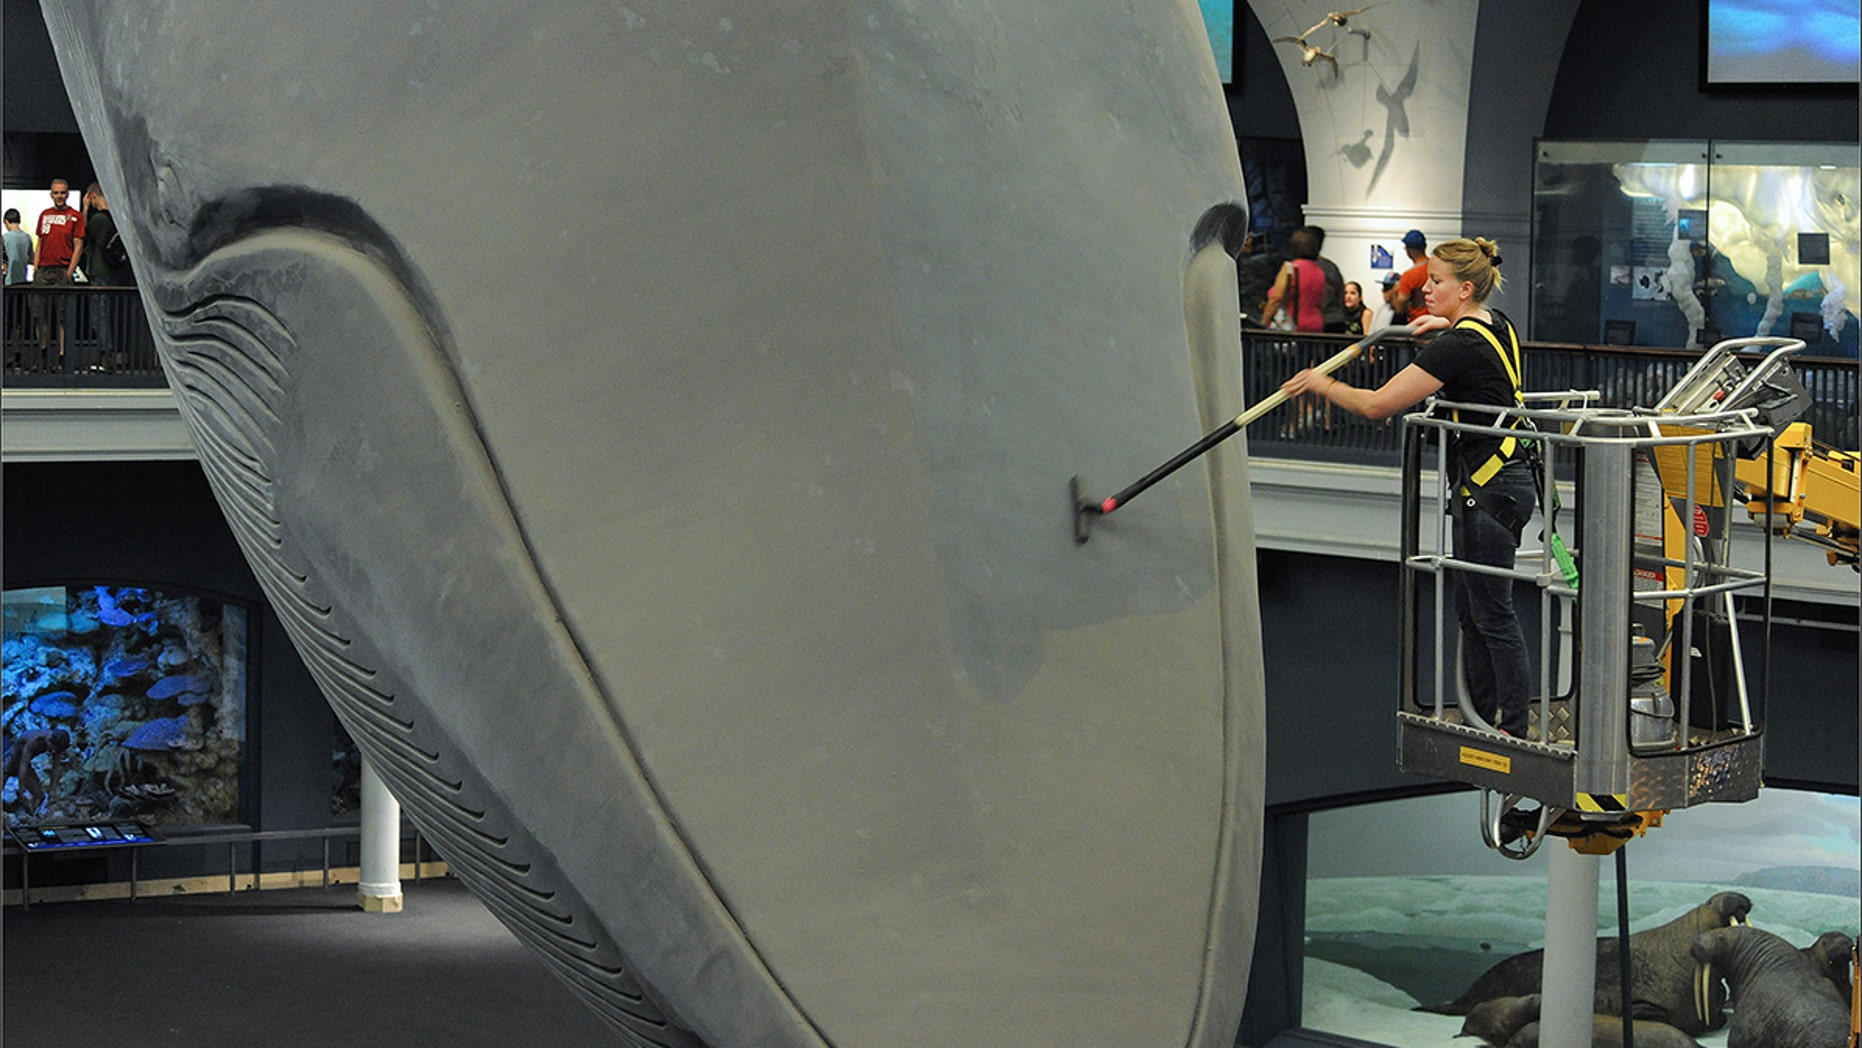 The American Museum of Natural History's blue whale gets its head vacuumed in 2014.